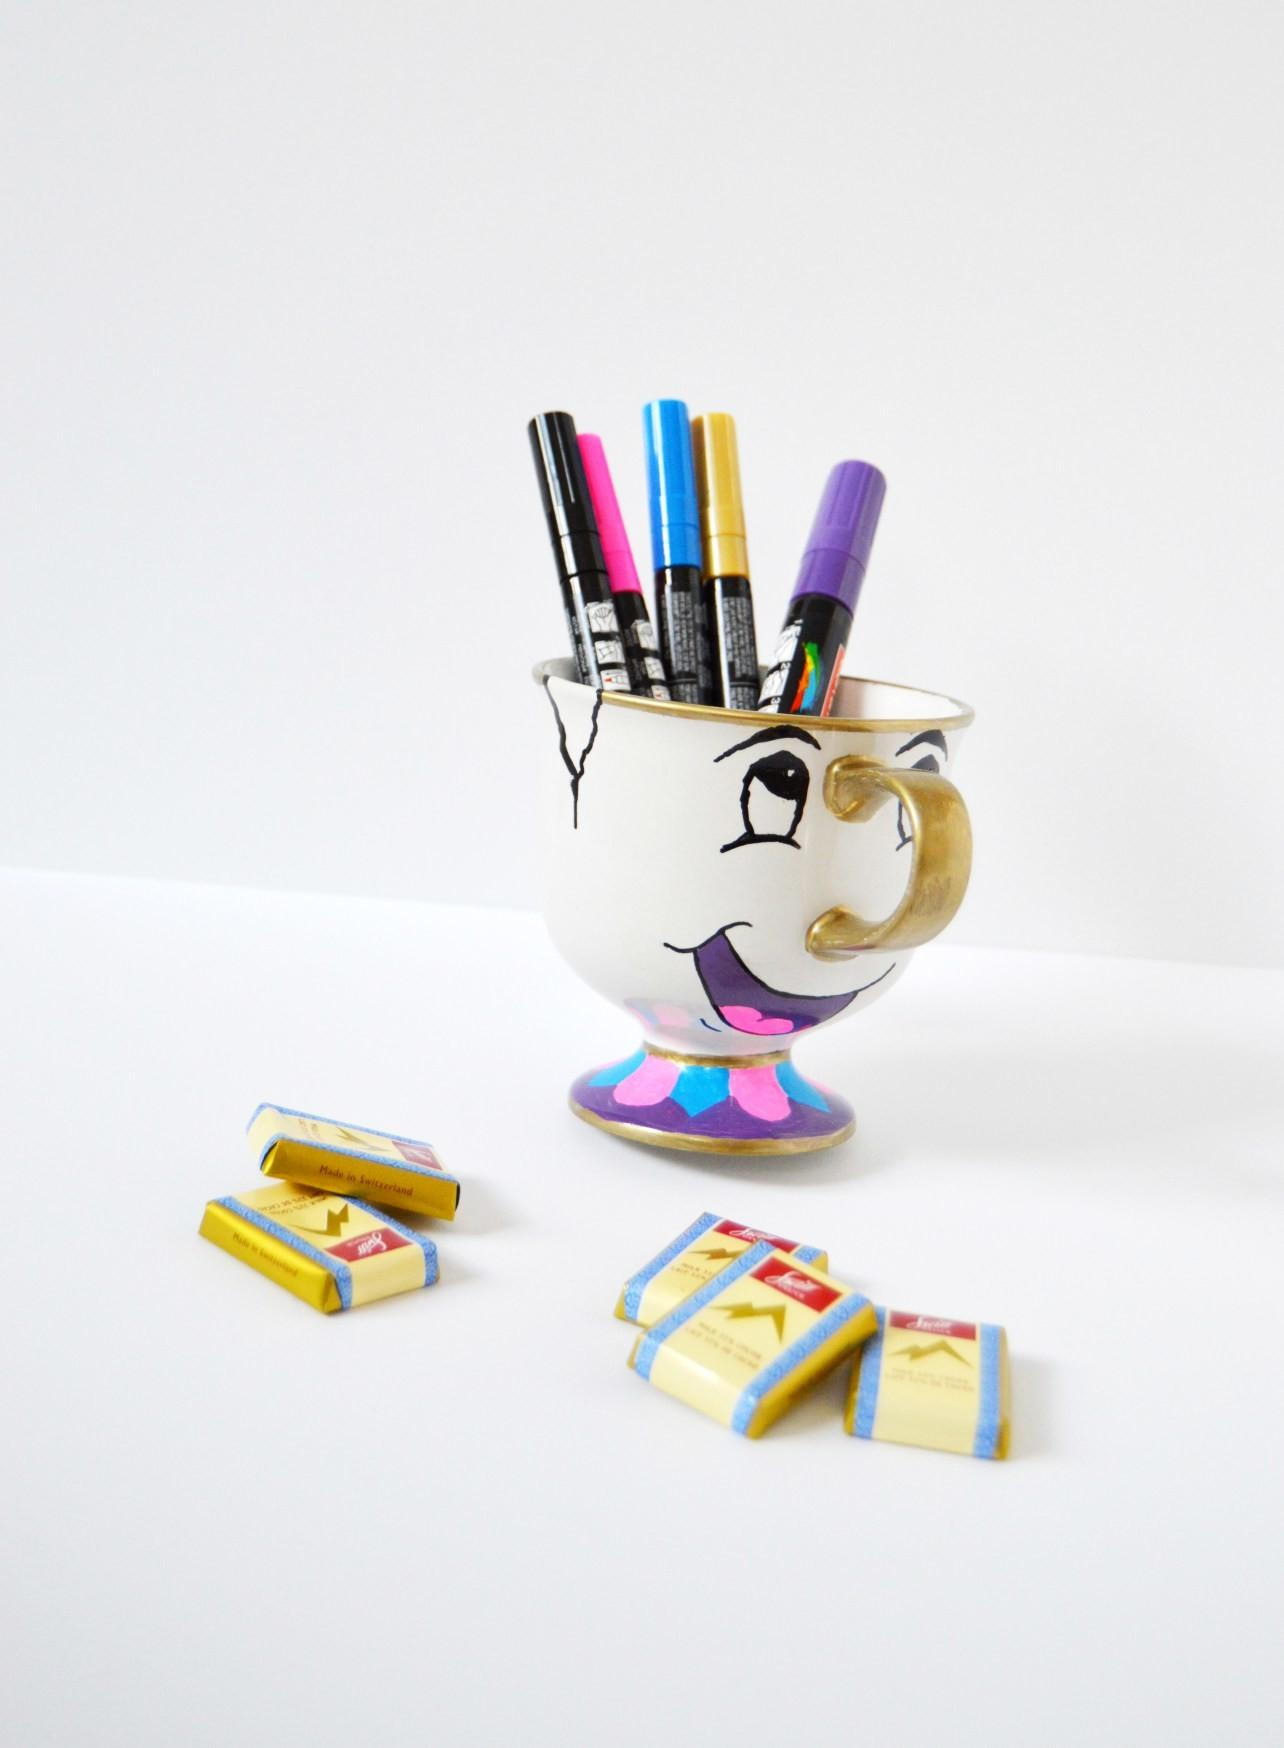 Awesome Diy Sharpie Crafts Even Kiddos Can